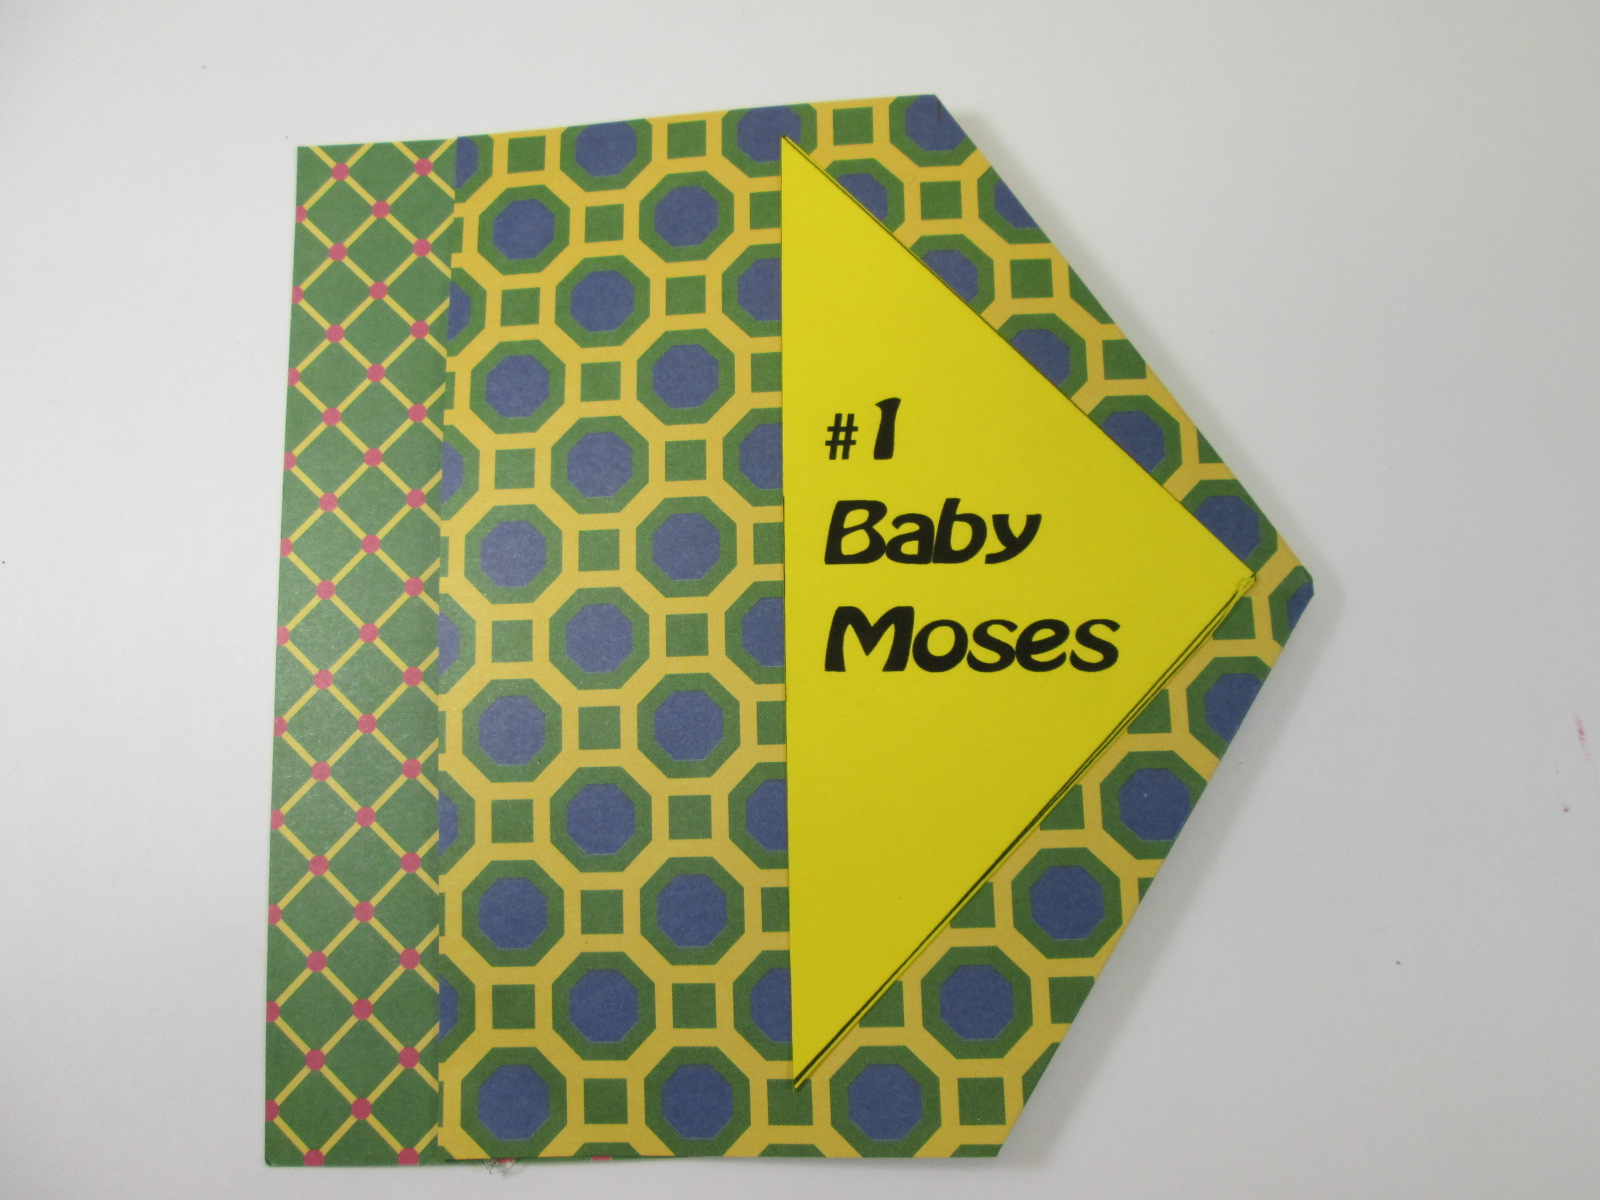 #1 Baby Moses